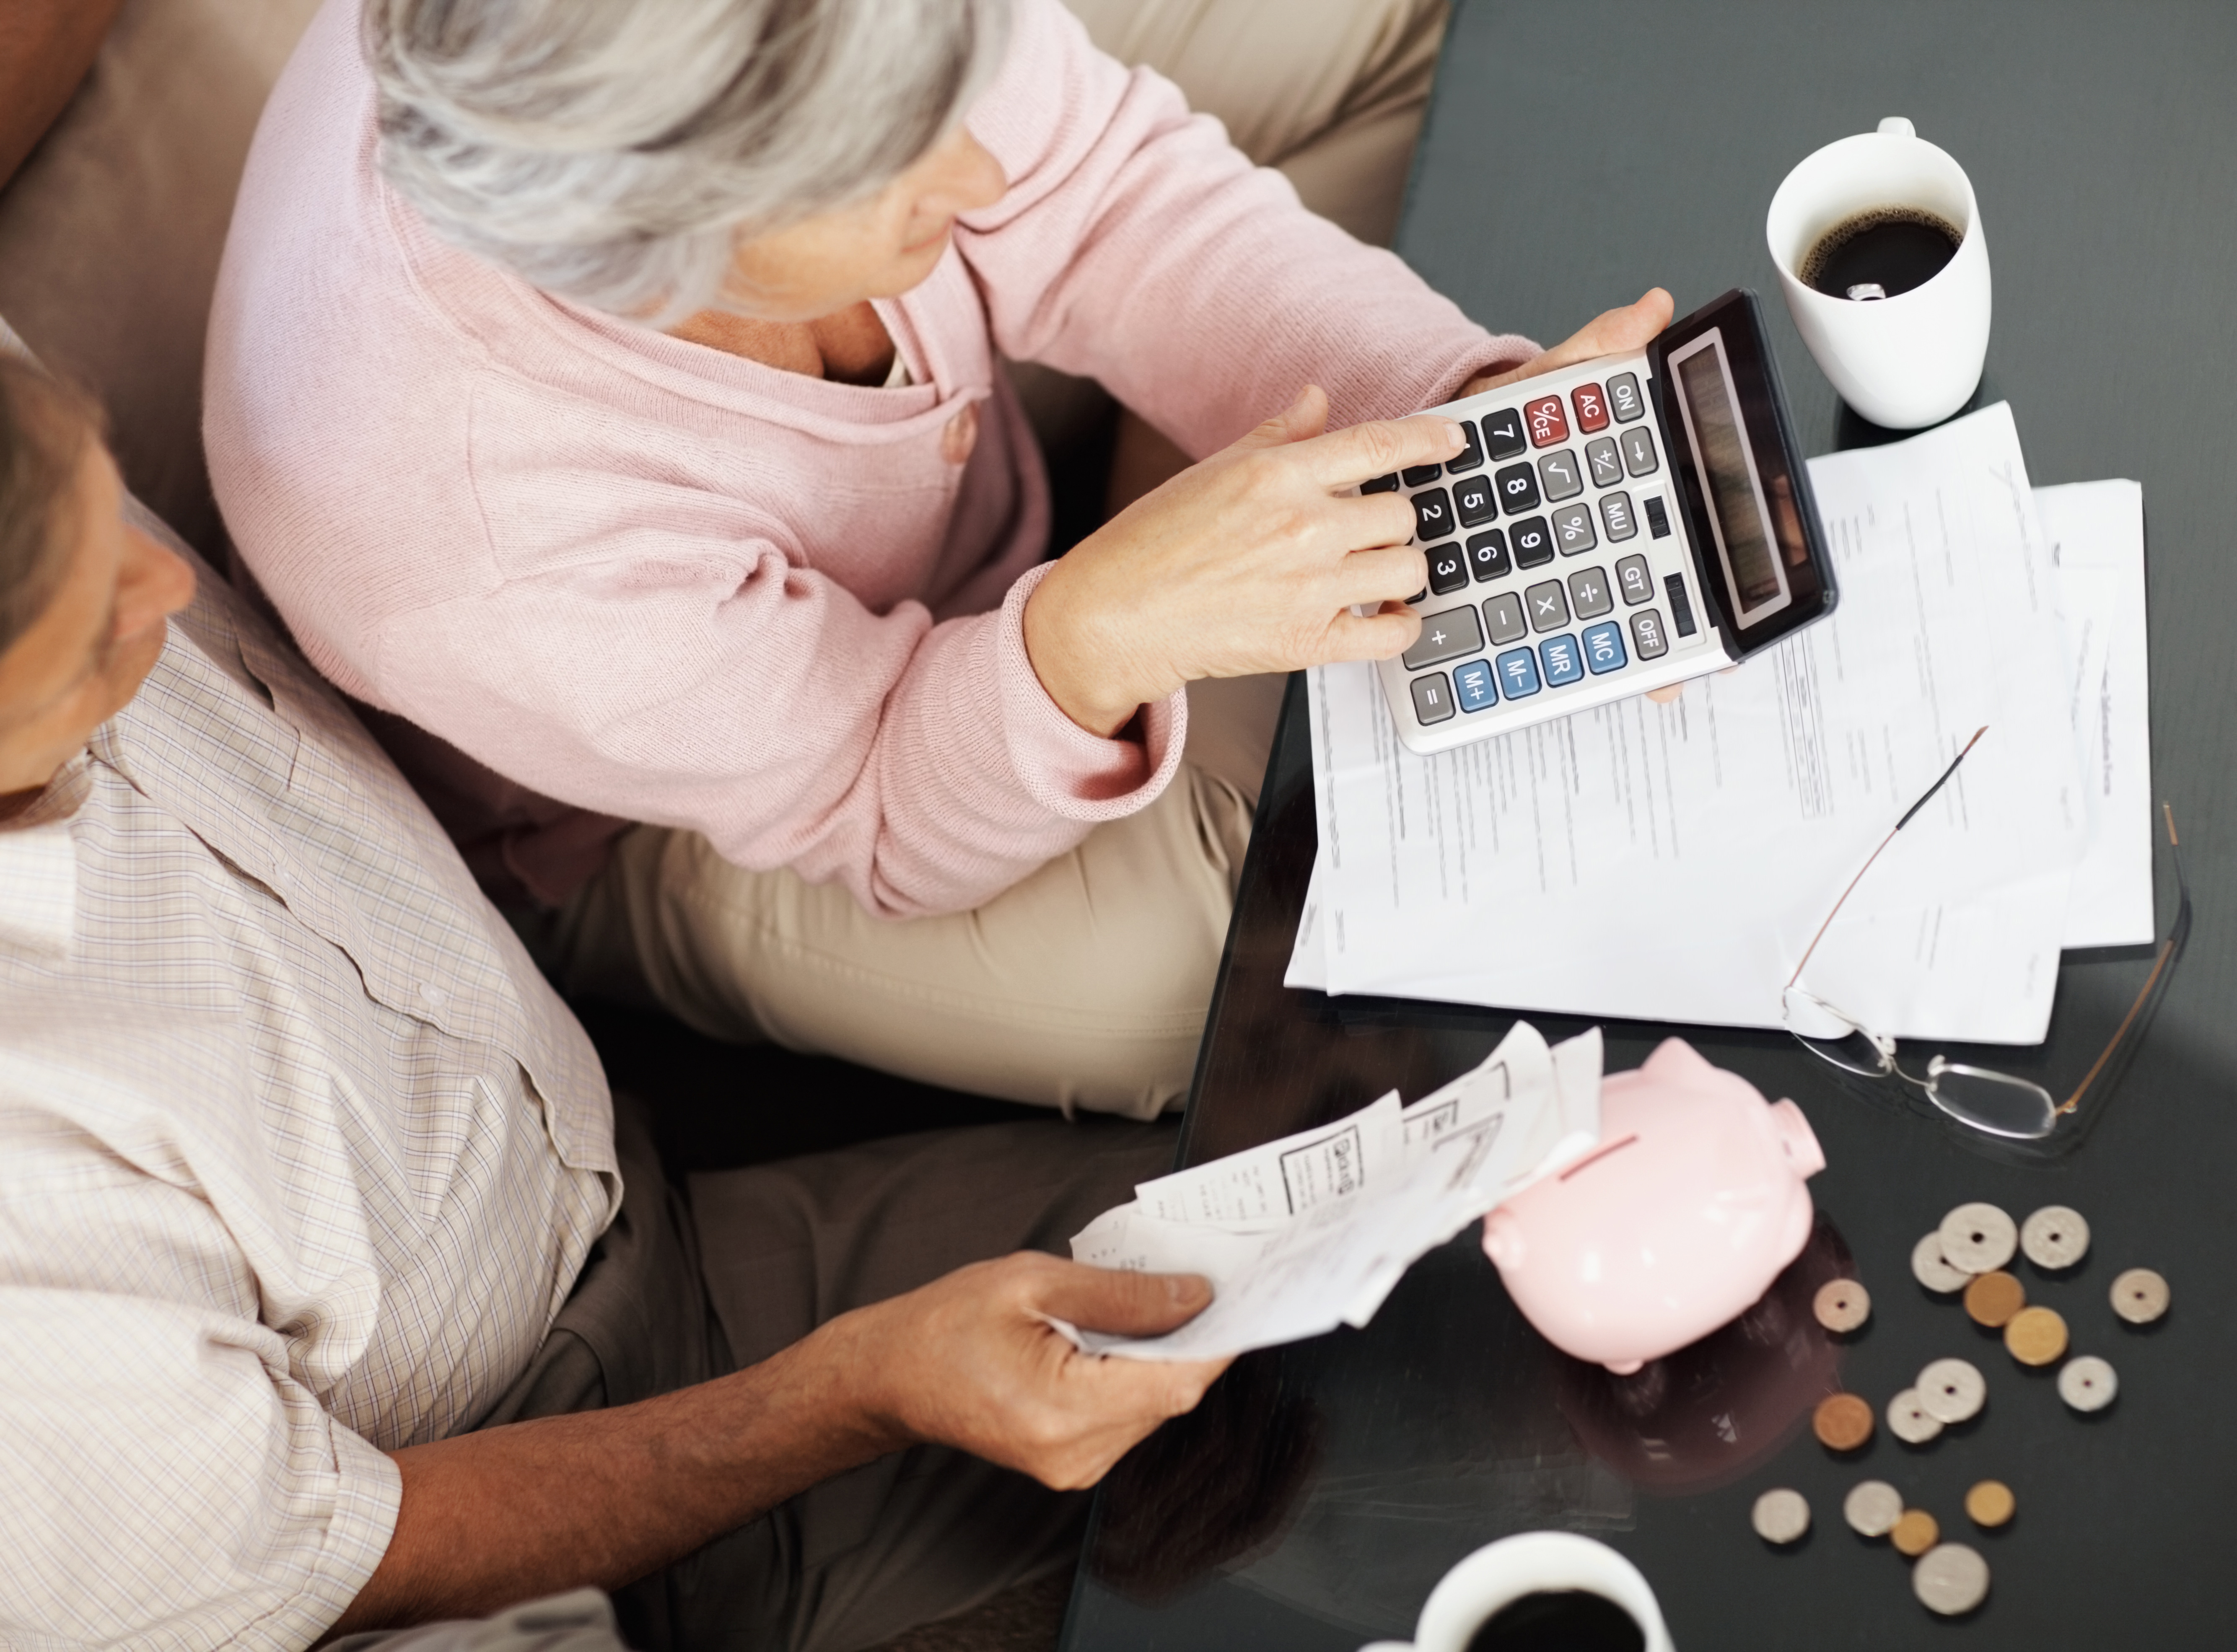 Elderly couple calculating their personal finances at home